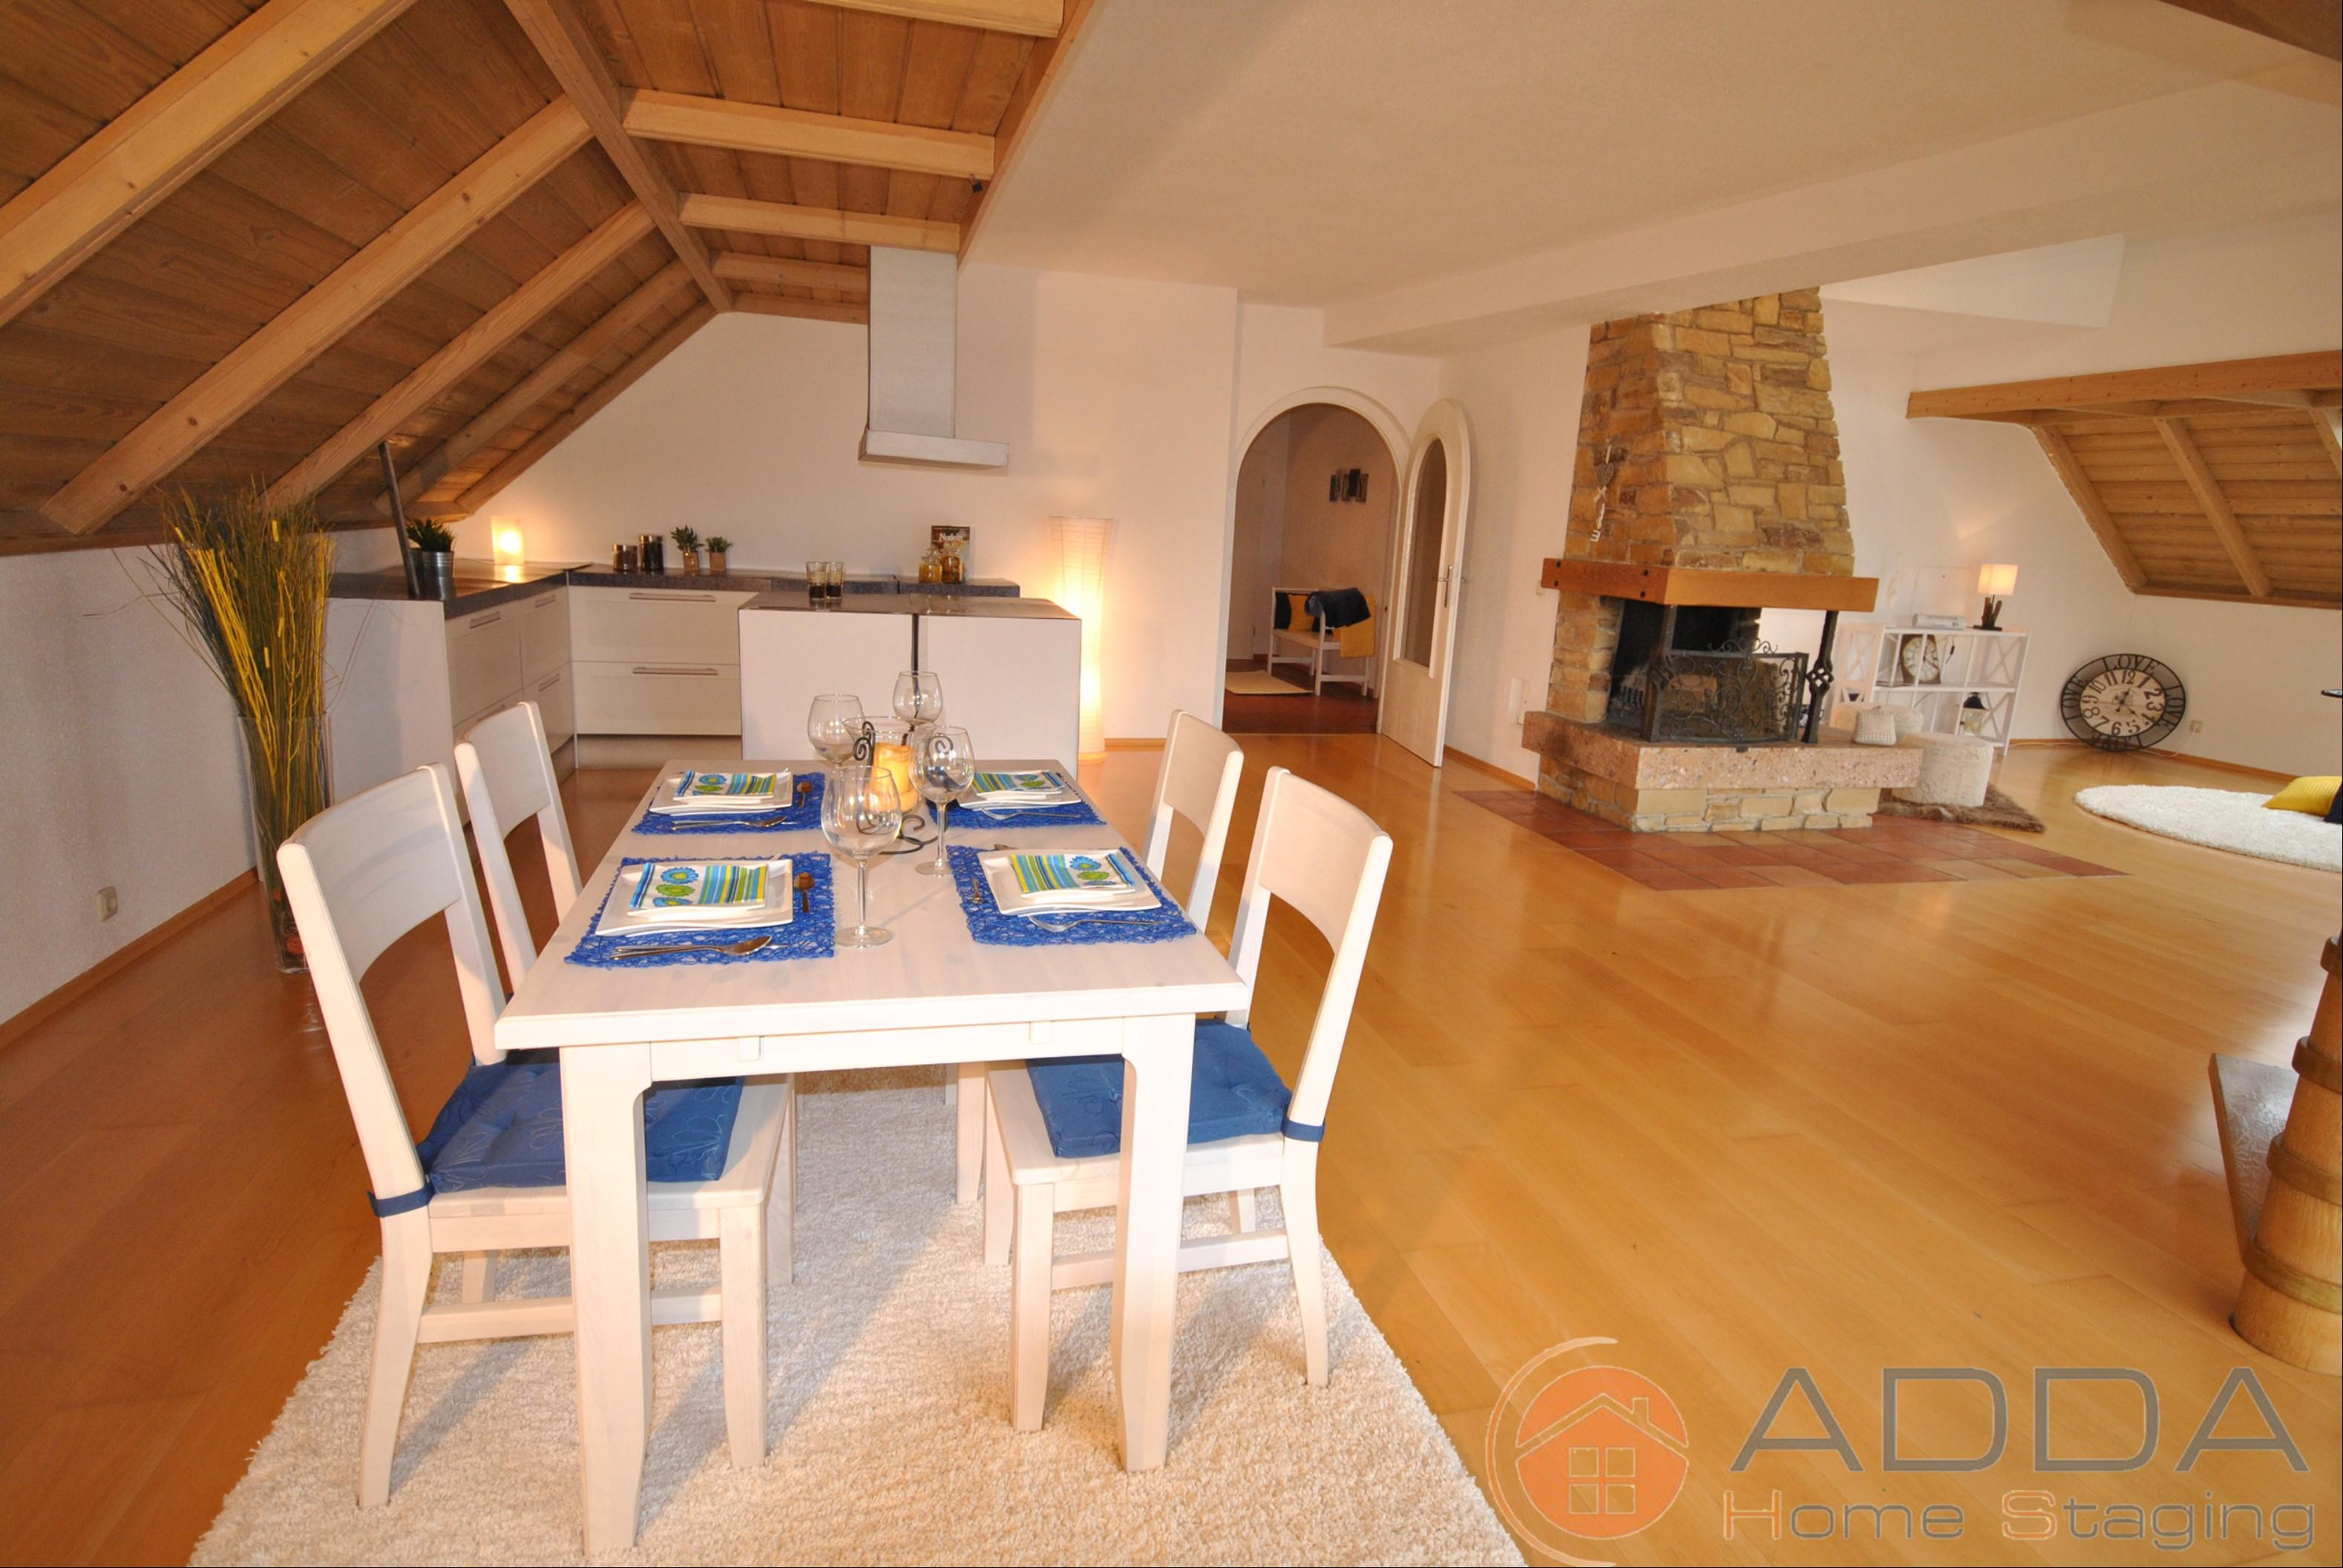 Essbereich nach Home Staging #offeneküche ©ADDA Home Staging